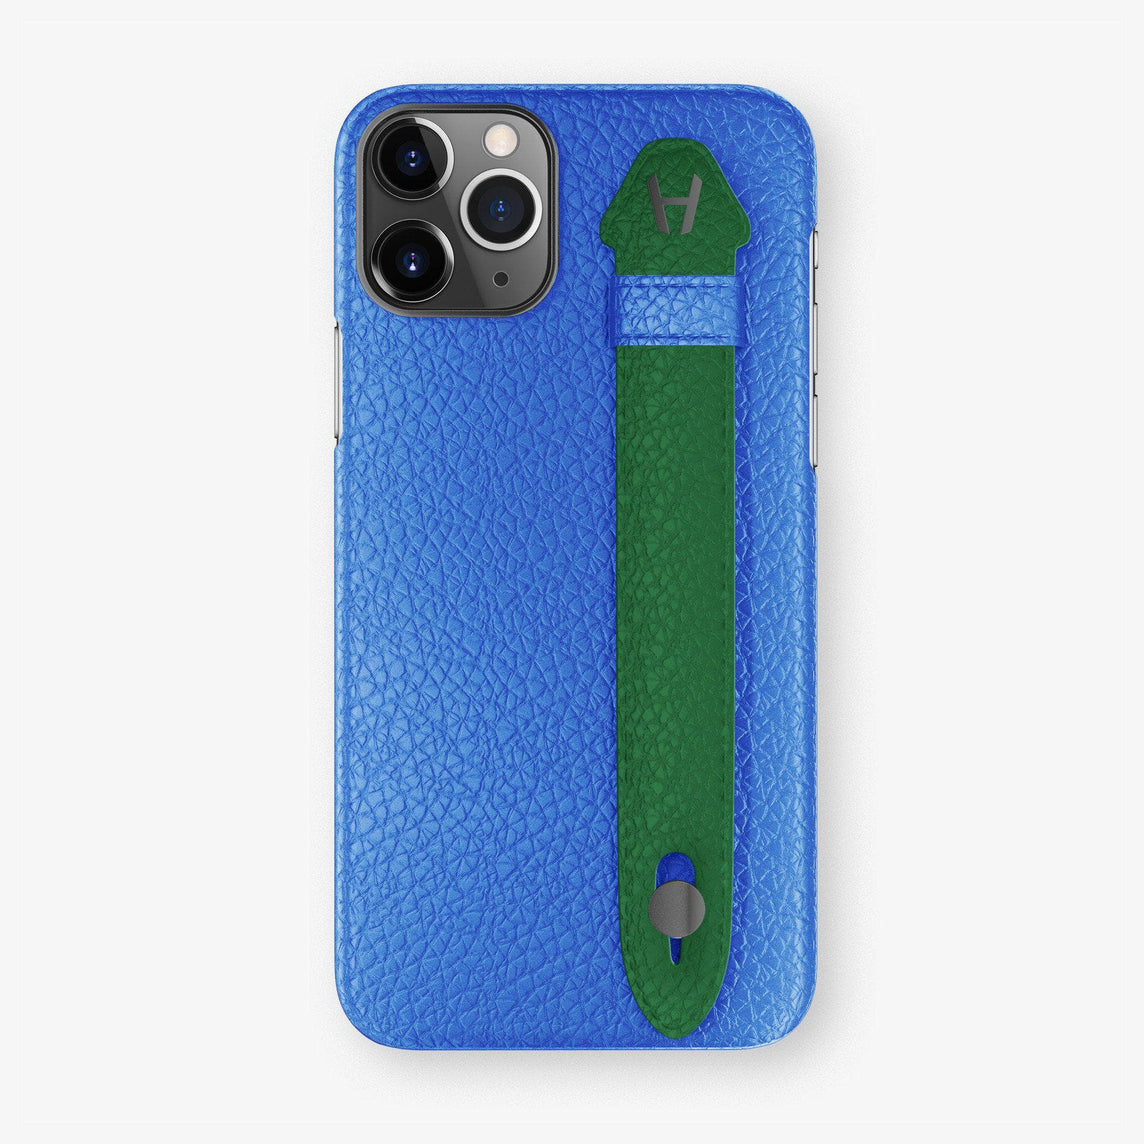 Calfskin Finger Case iPhone 11 Pro Max | Peony Blue/Green - Black